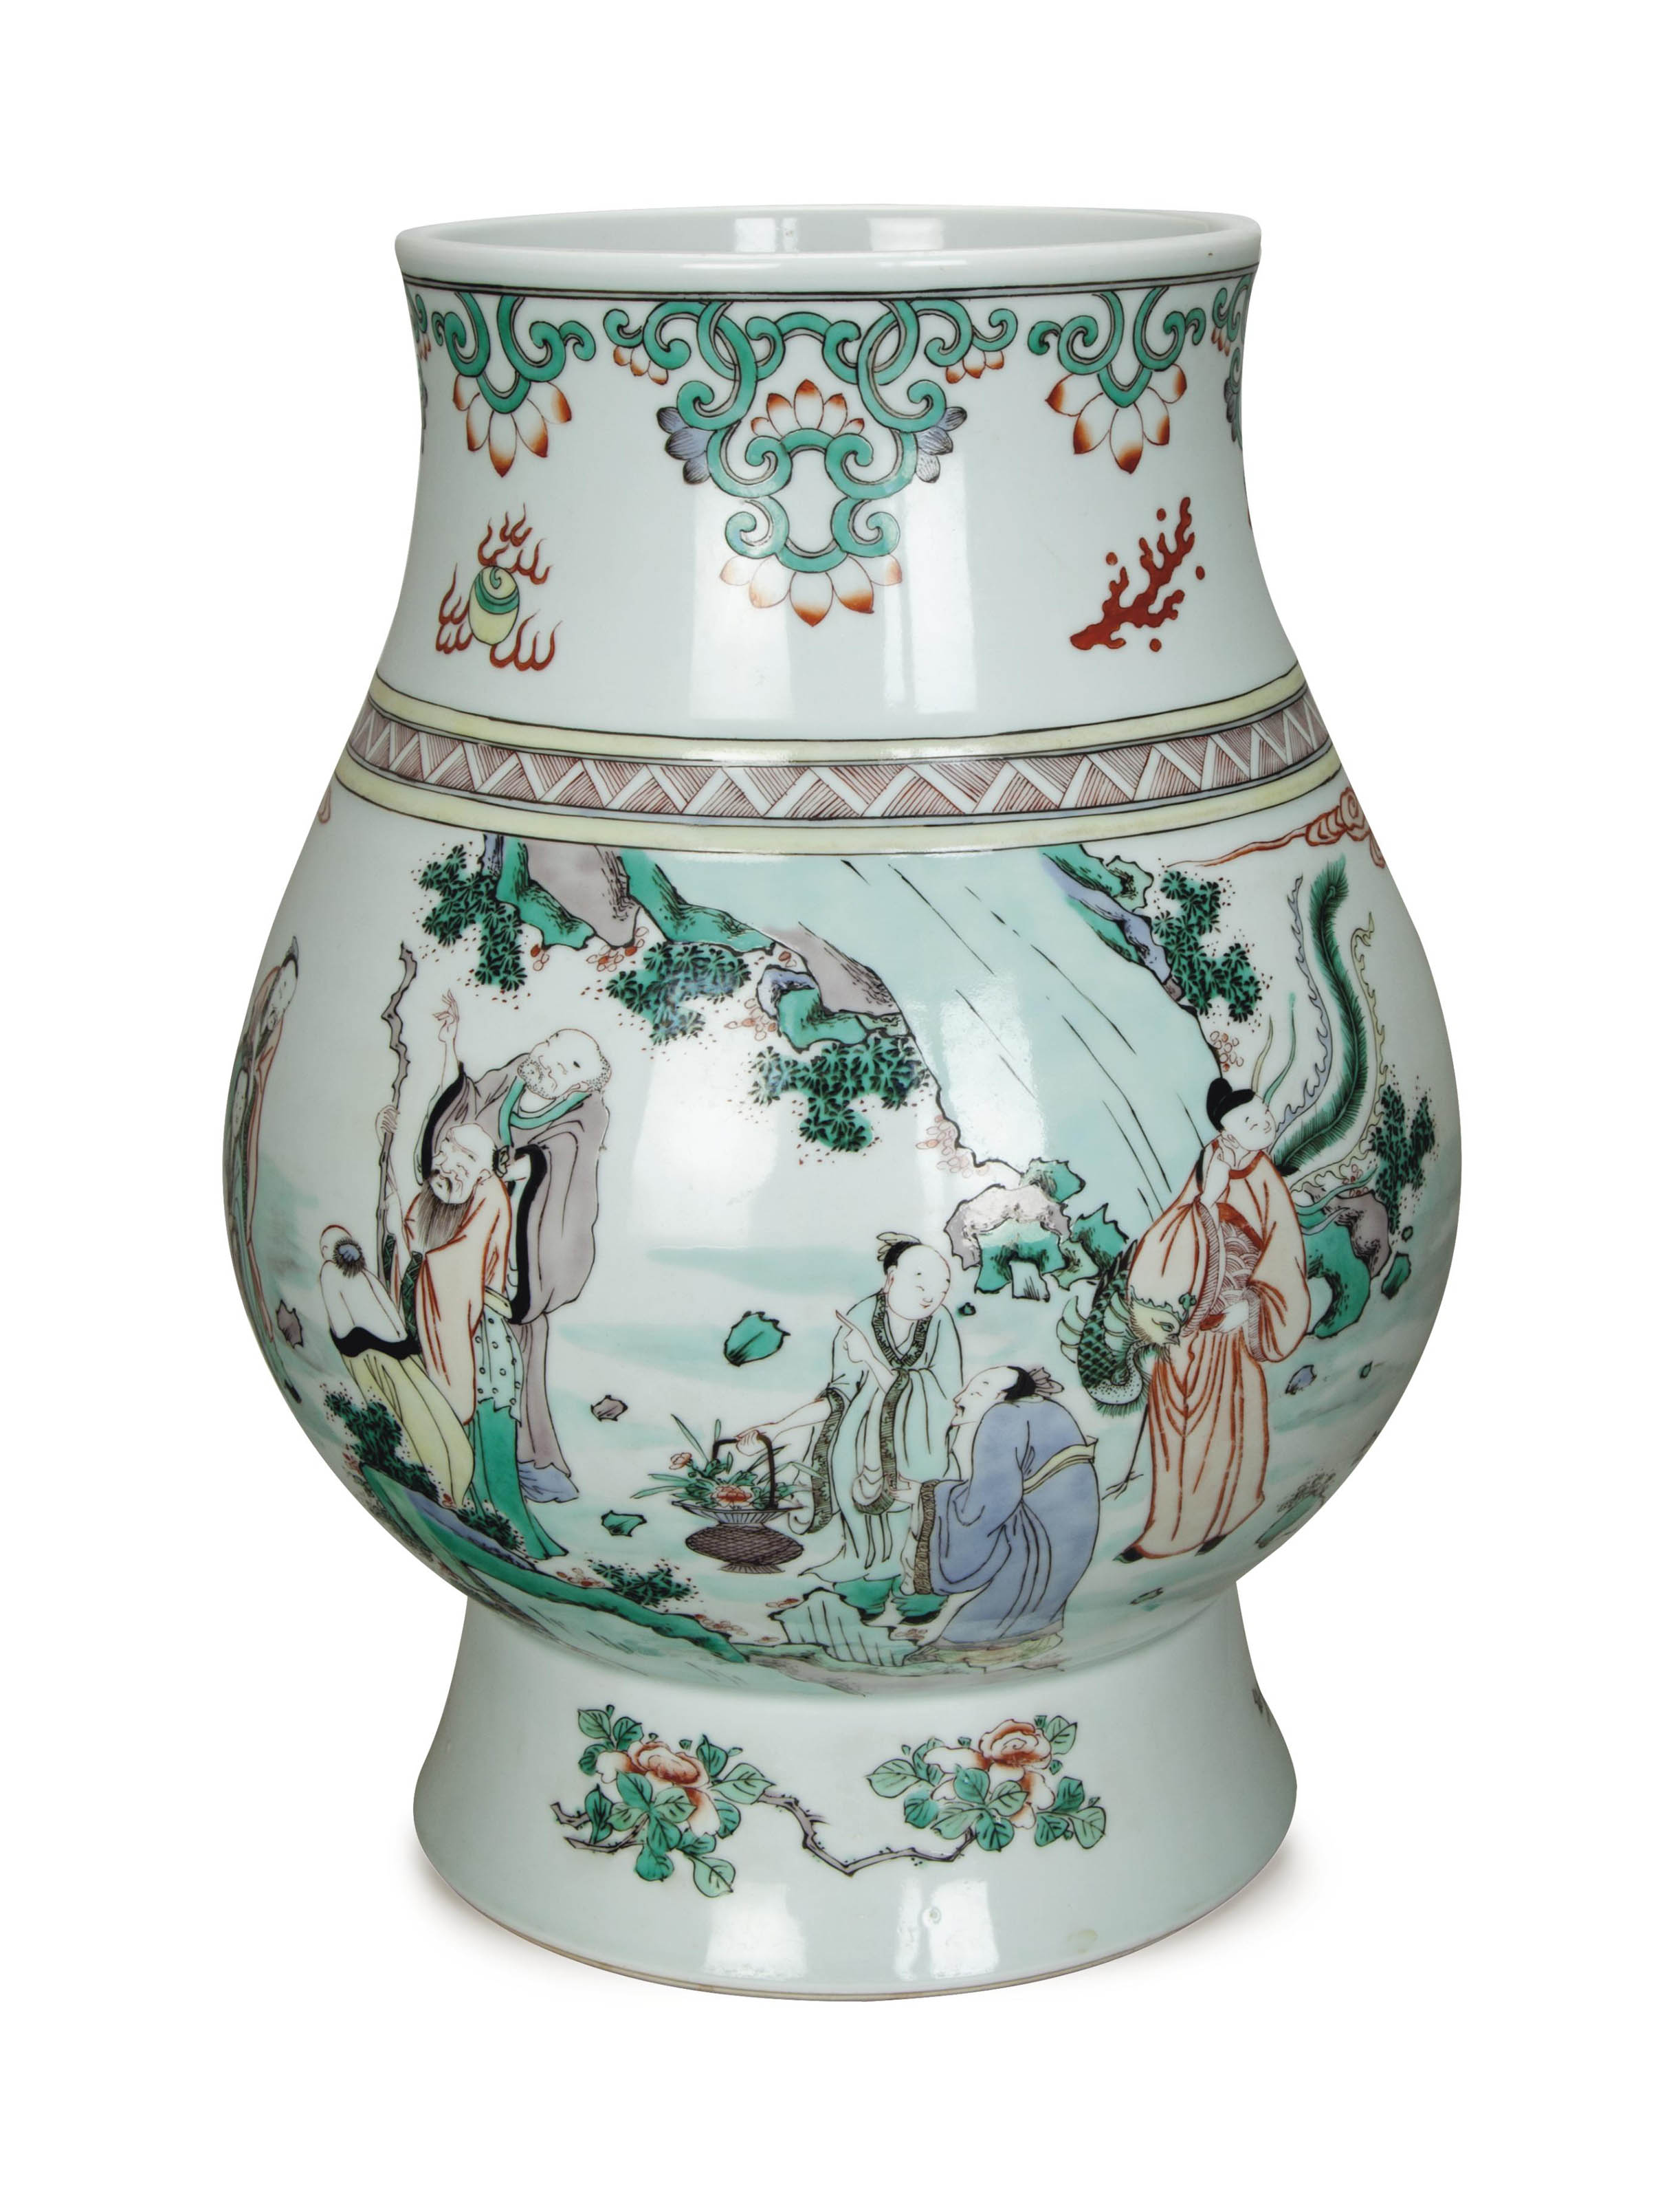 A LARGE CHINESE FAMILLE VERTE PEAR-SHAPED VASE